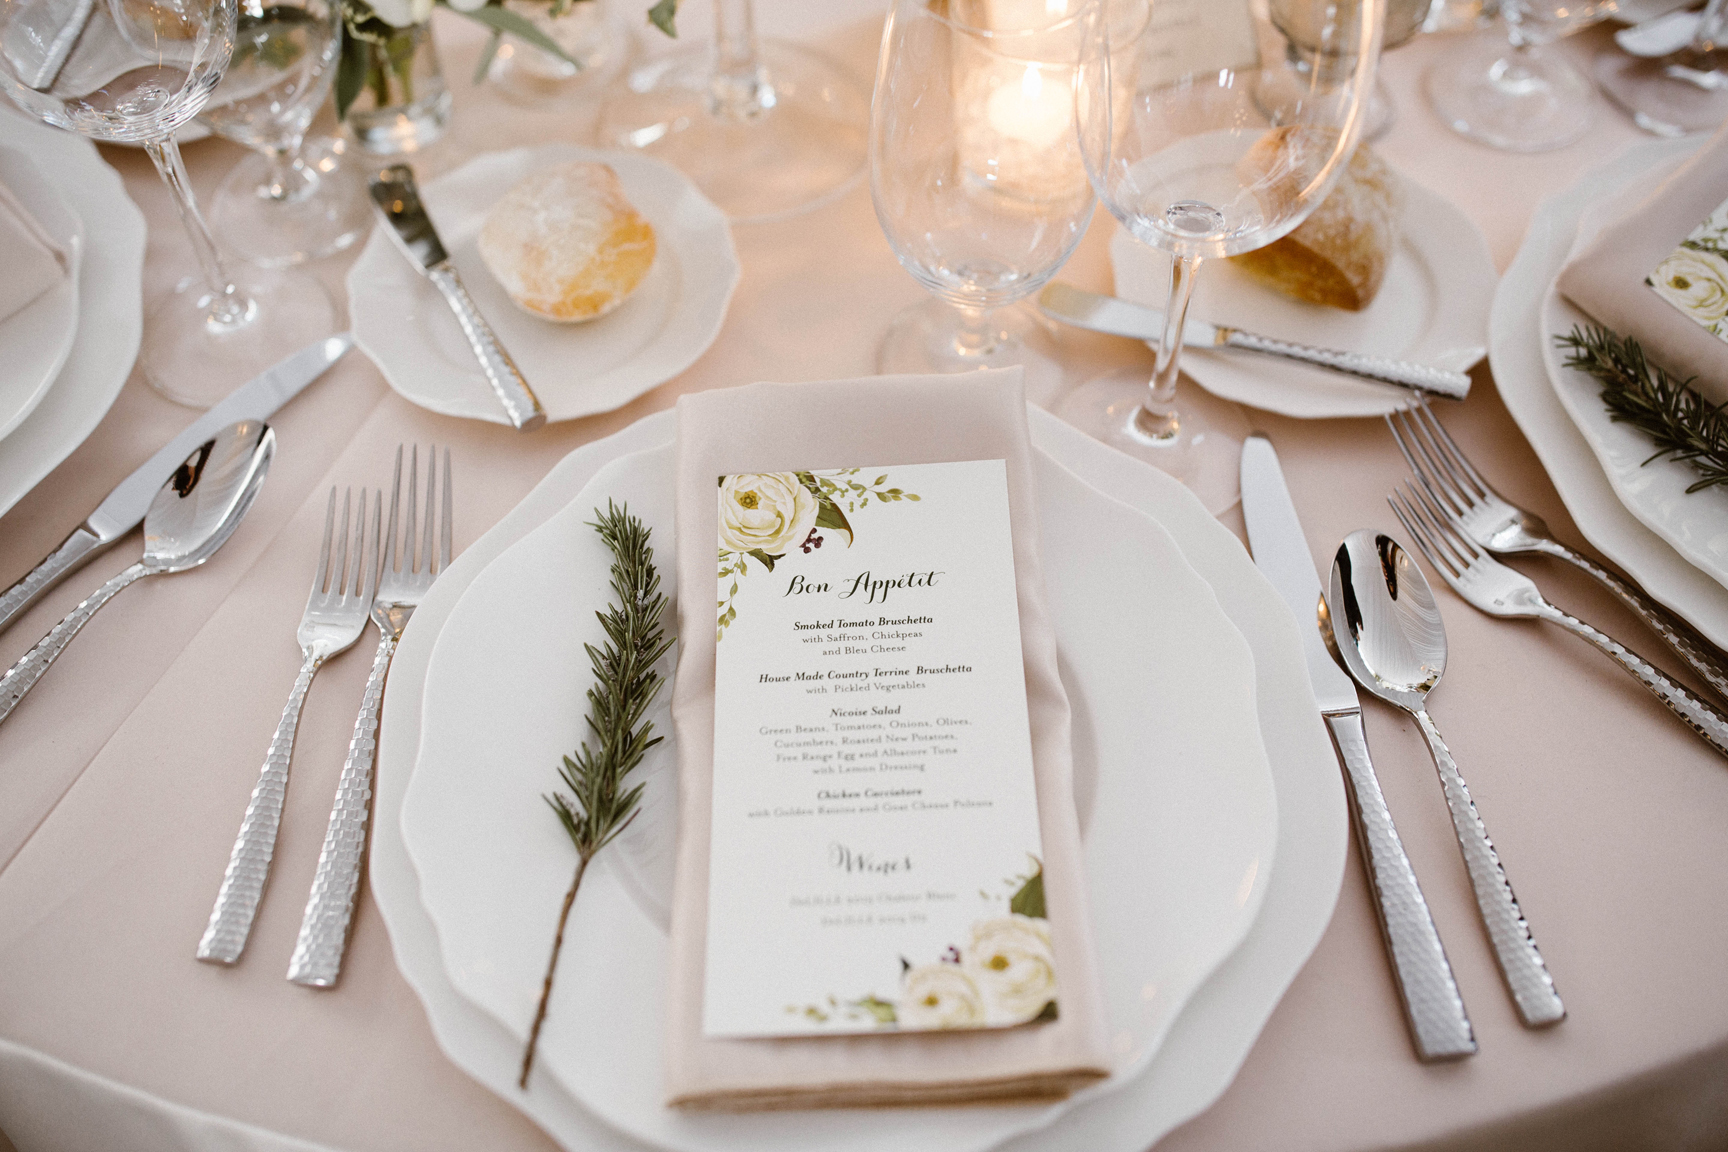 DeLille+Cellars_The+Chateau_Woodinville_2017_Weddings+In+Woodinville120.jpg